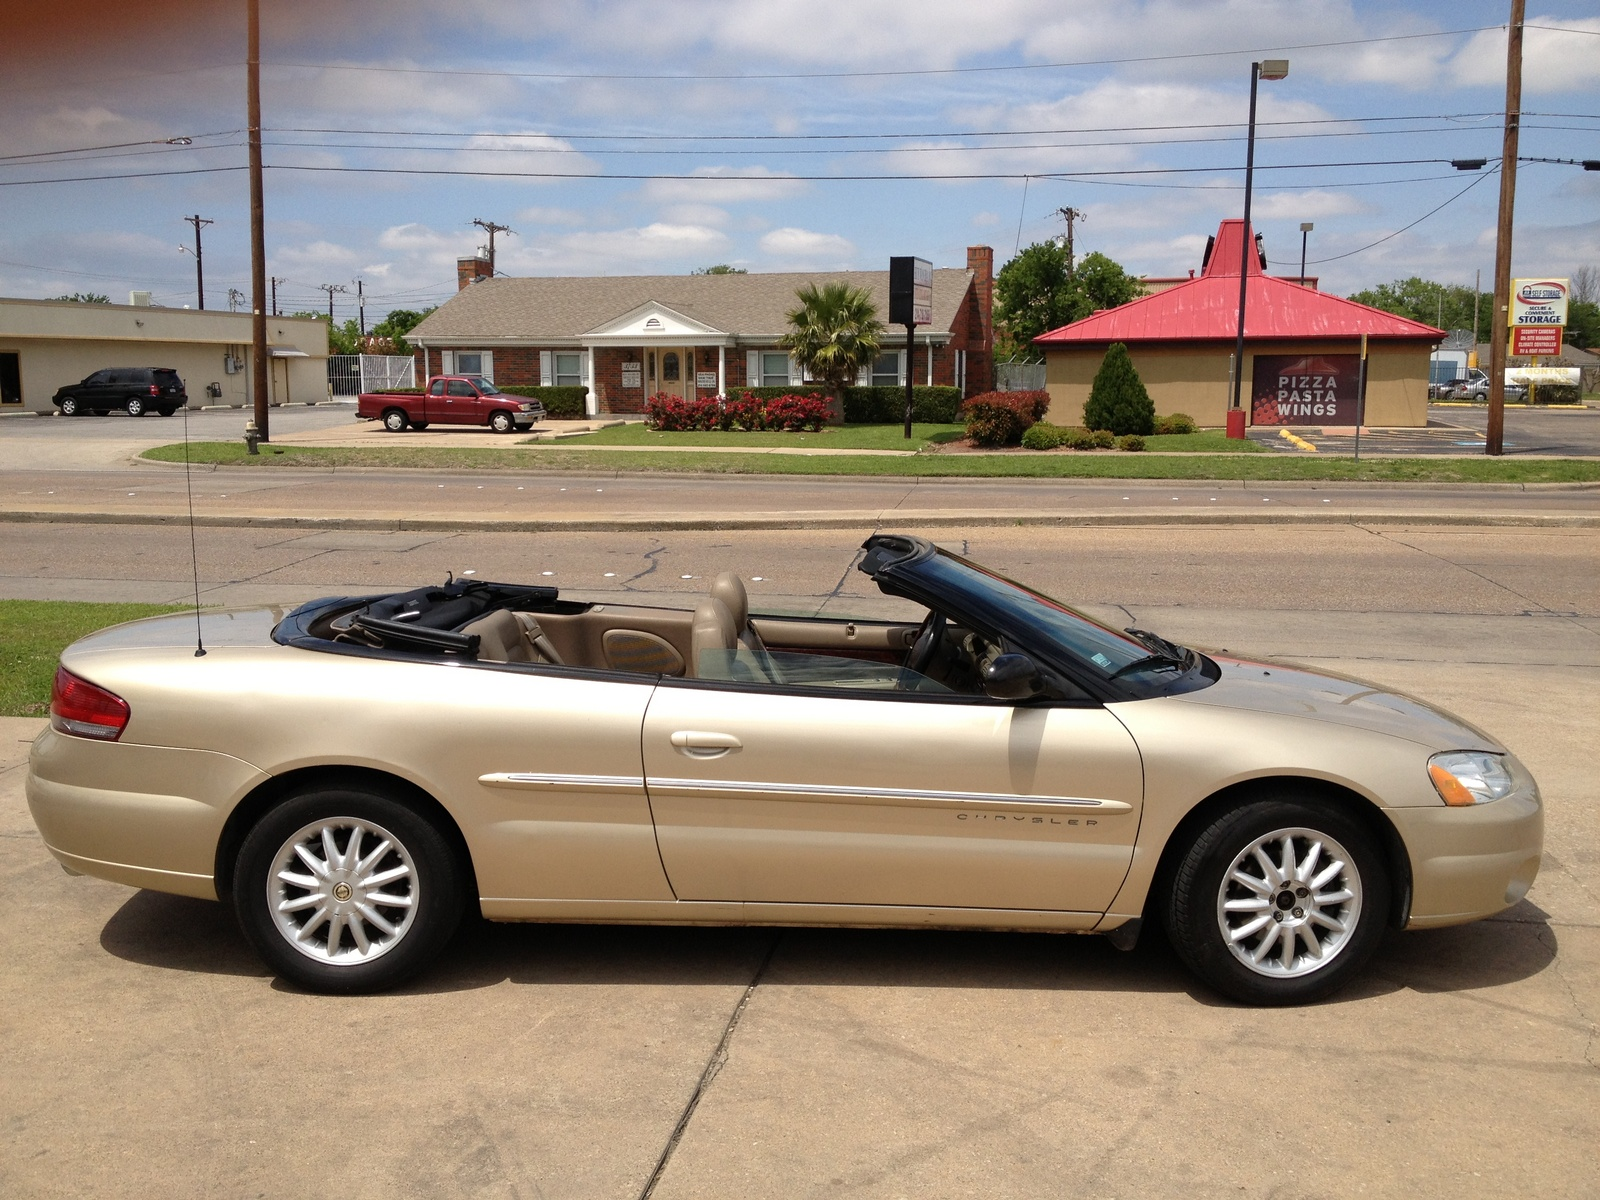 Chrysler Sebring Lxi Convertible Pic on 1999 Chrysler Sebring Convertible Specs